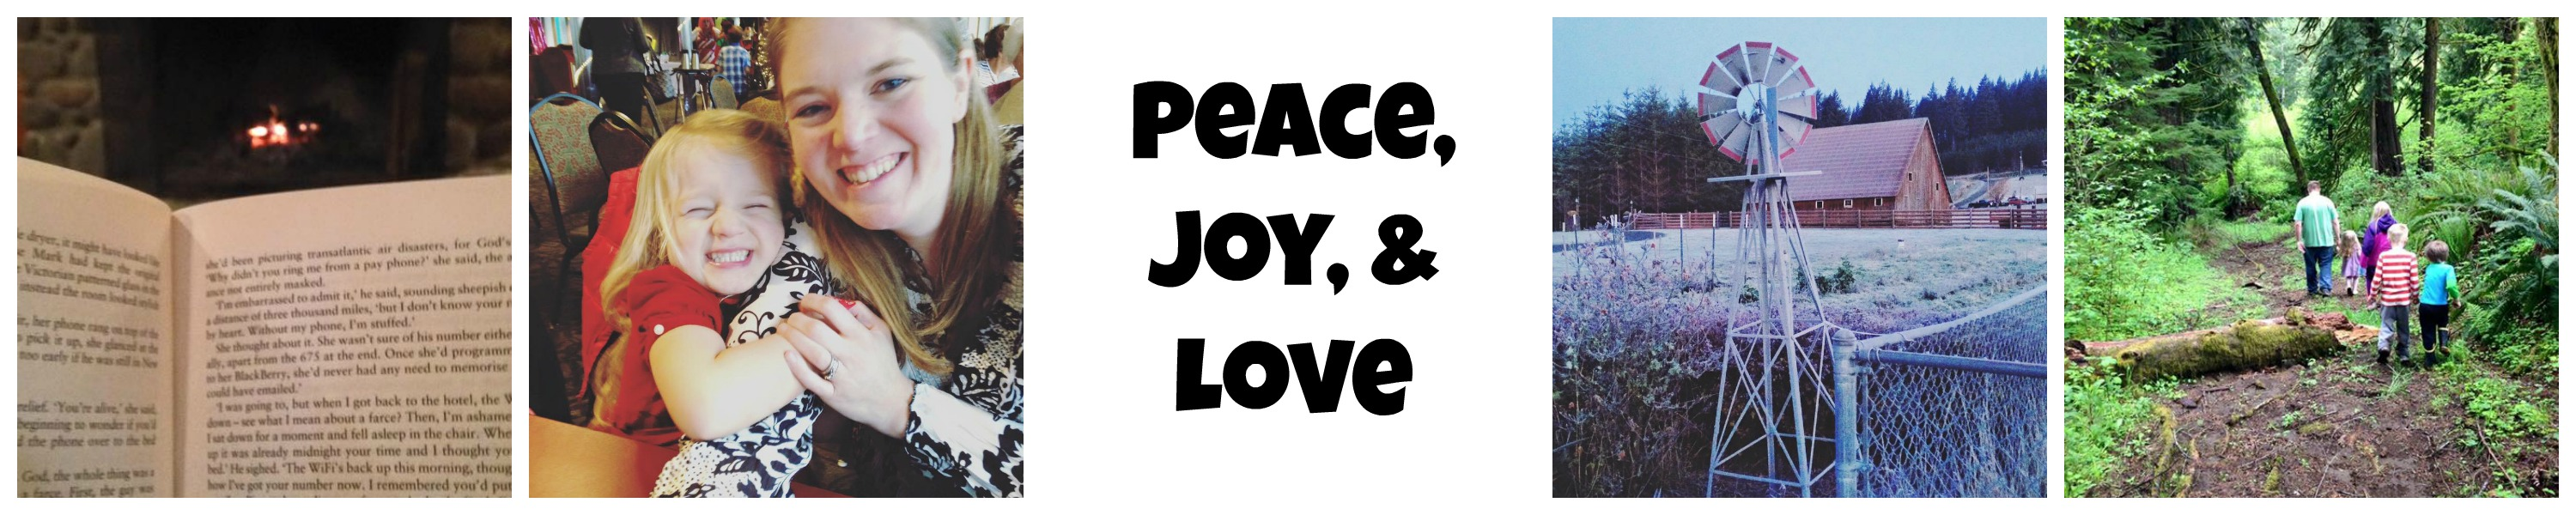 Resolving to Change: Seeking Peace, Joy, and Love in the New Year